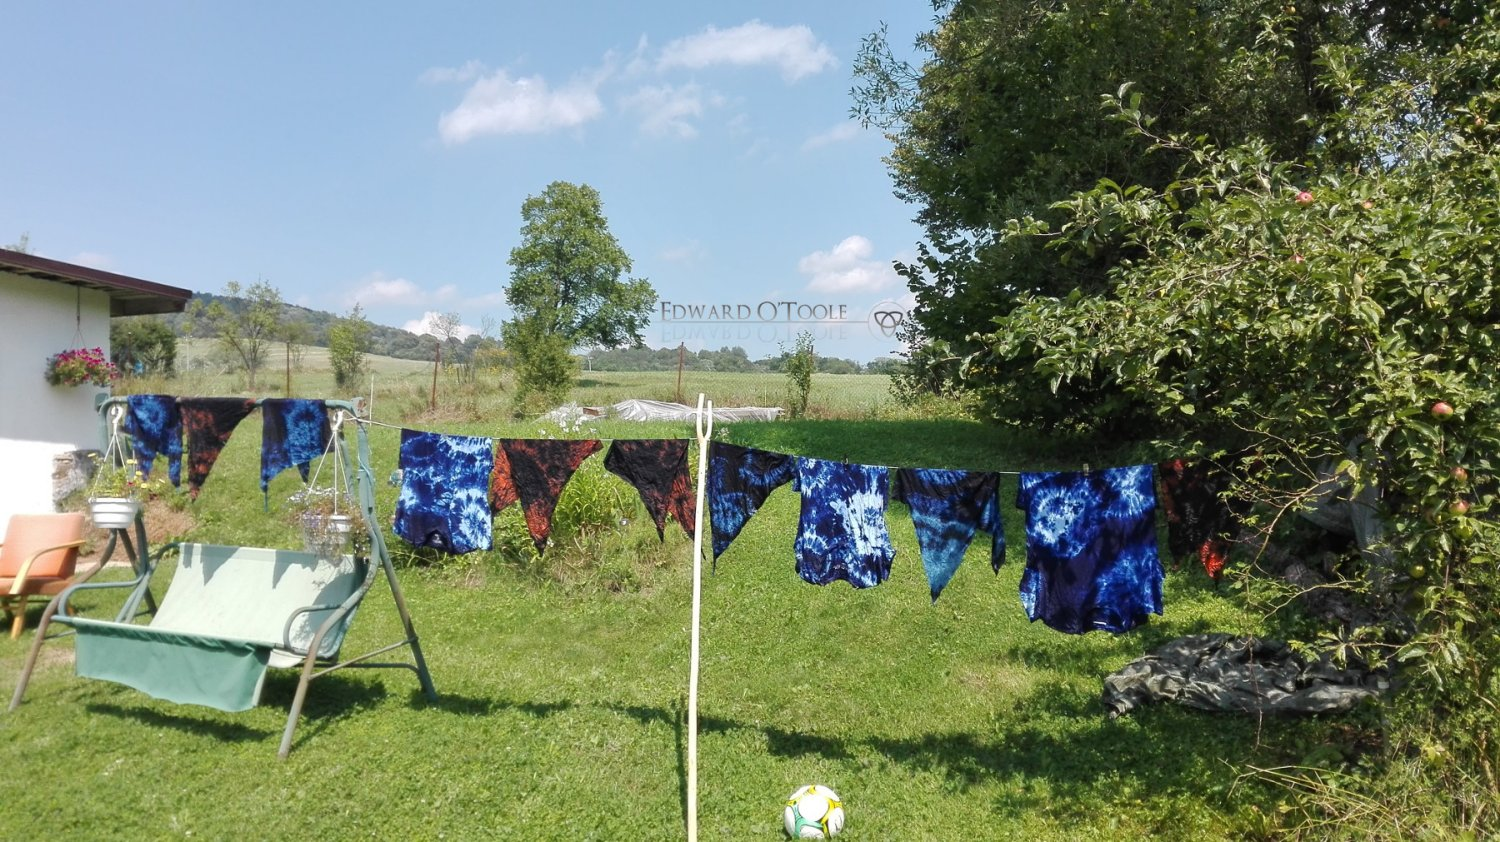 batik clothes drying on line